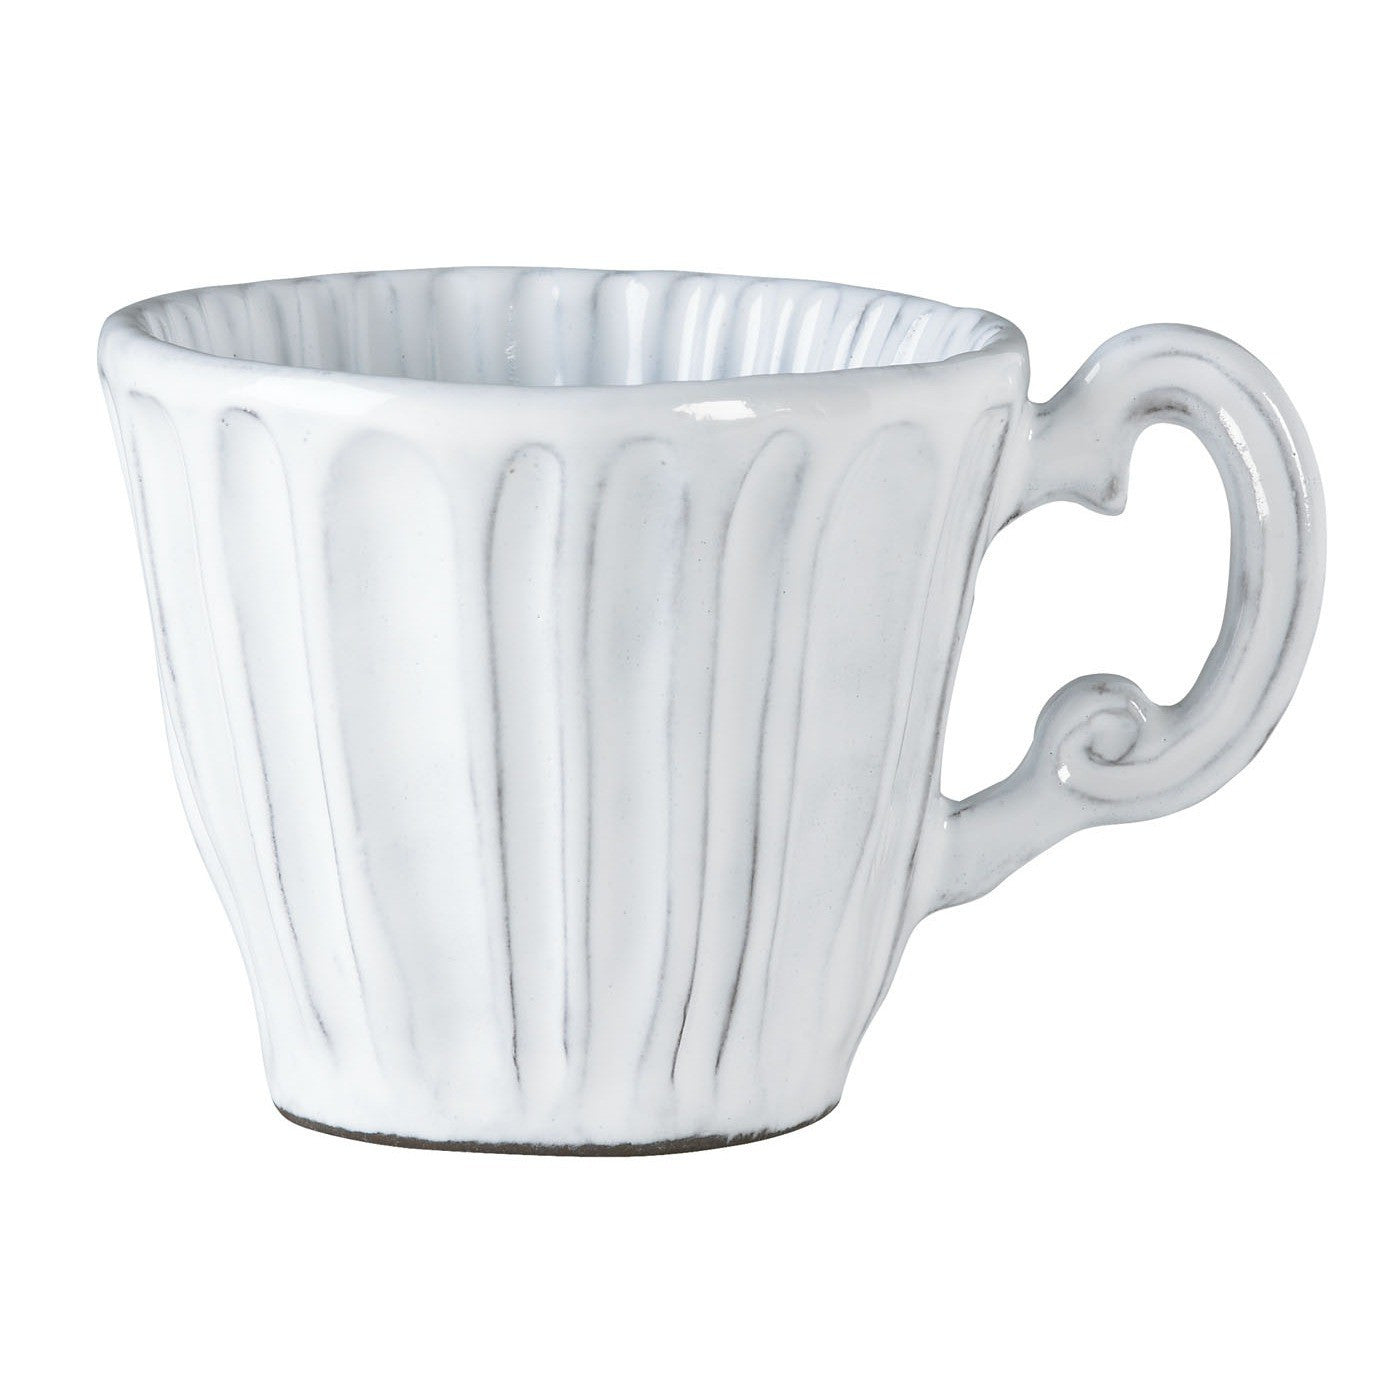 Incanto Stripe White Mug - Set of 4 , tableware - Vietri, Pezzo Bello  - 1